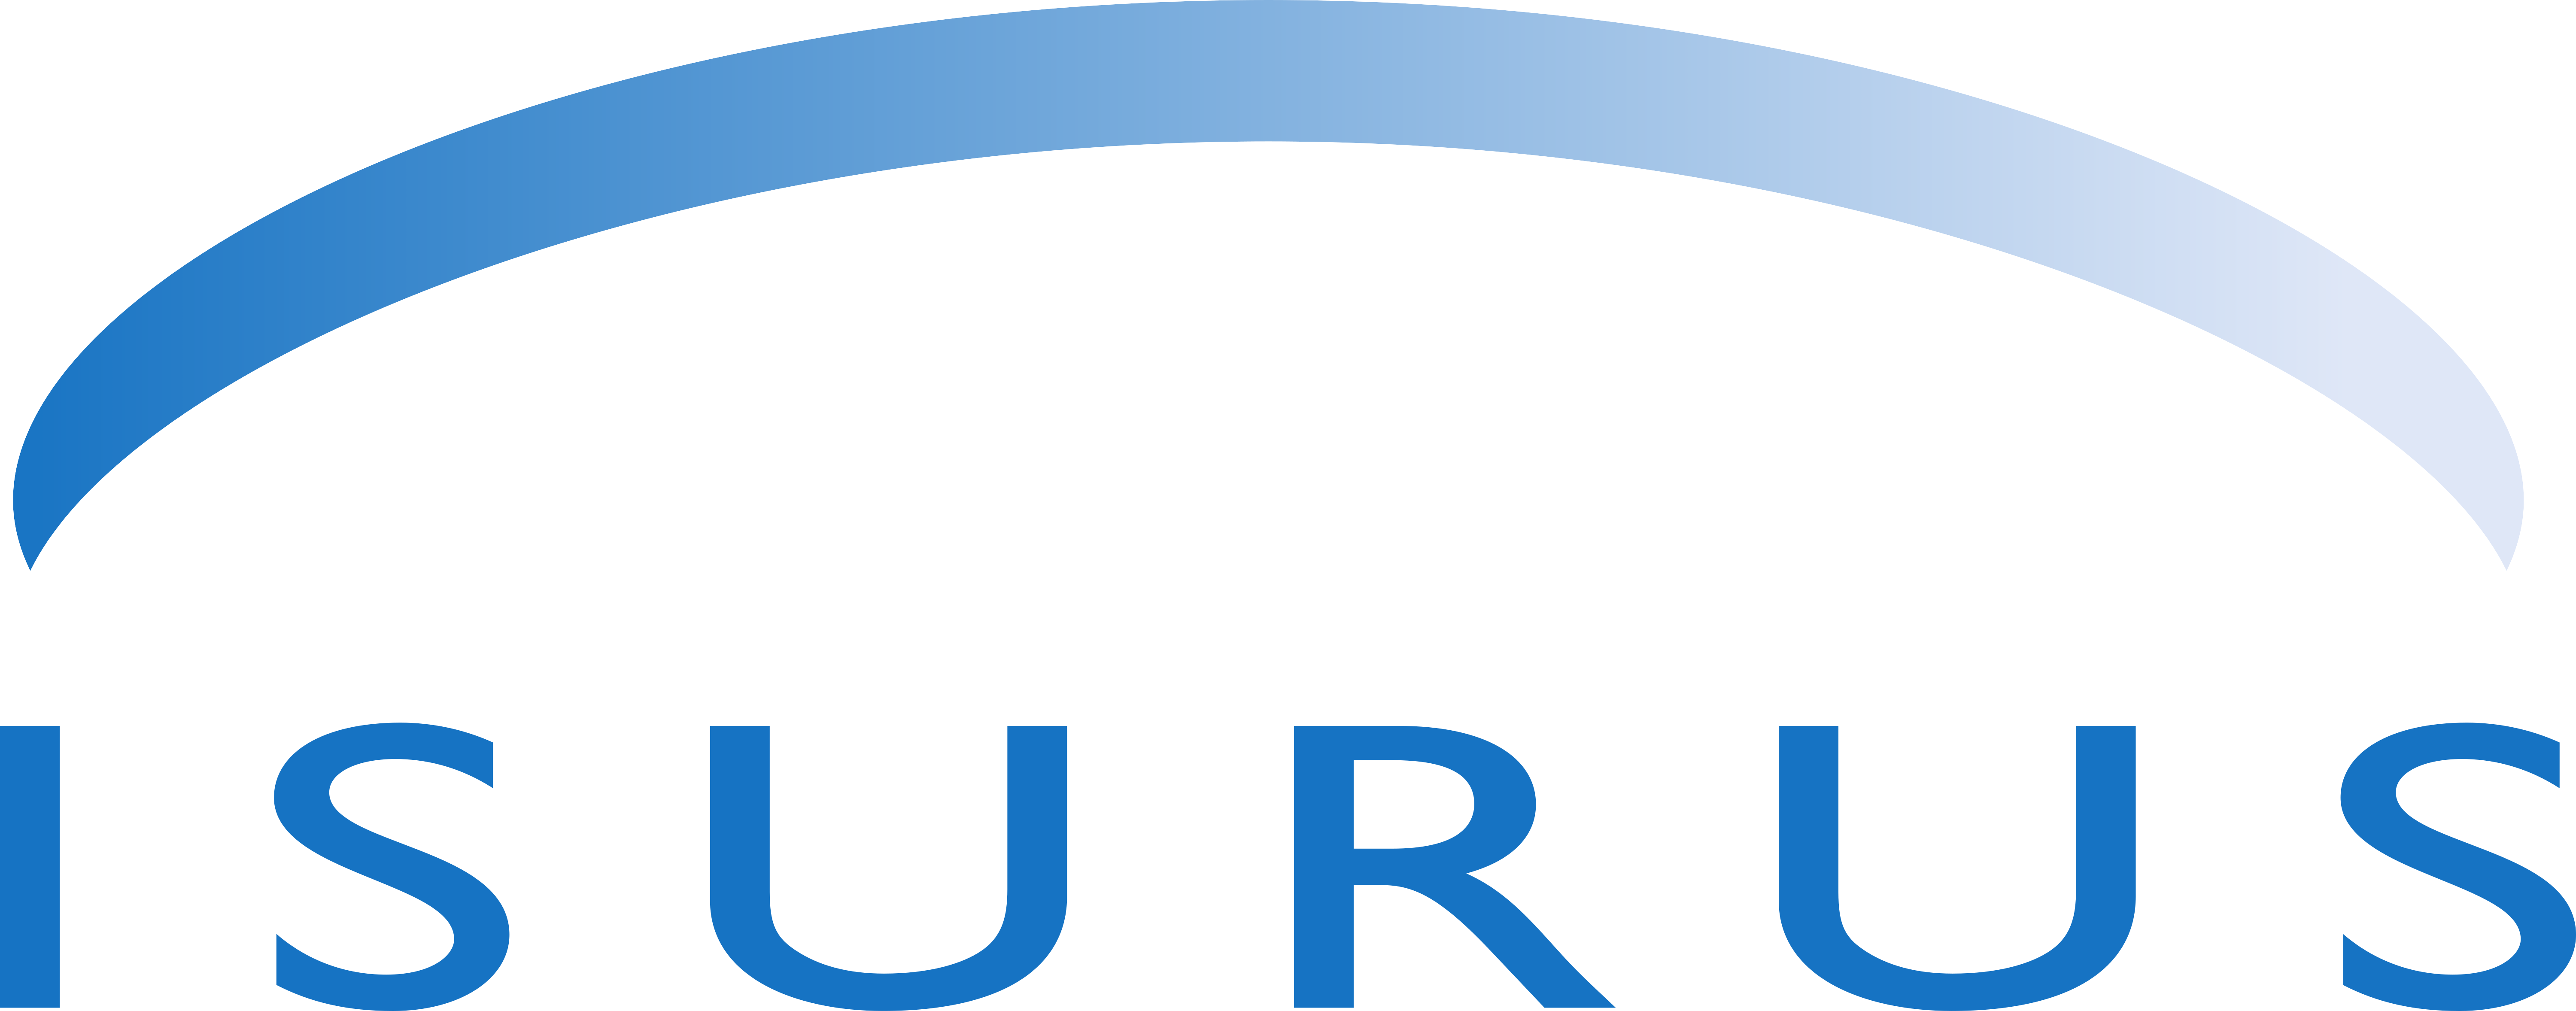 Isurus Market Research and Consulting Logo